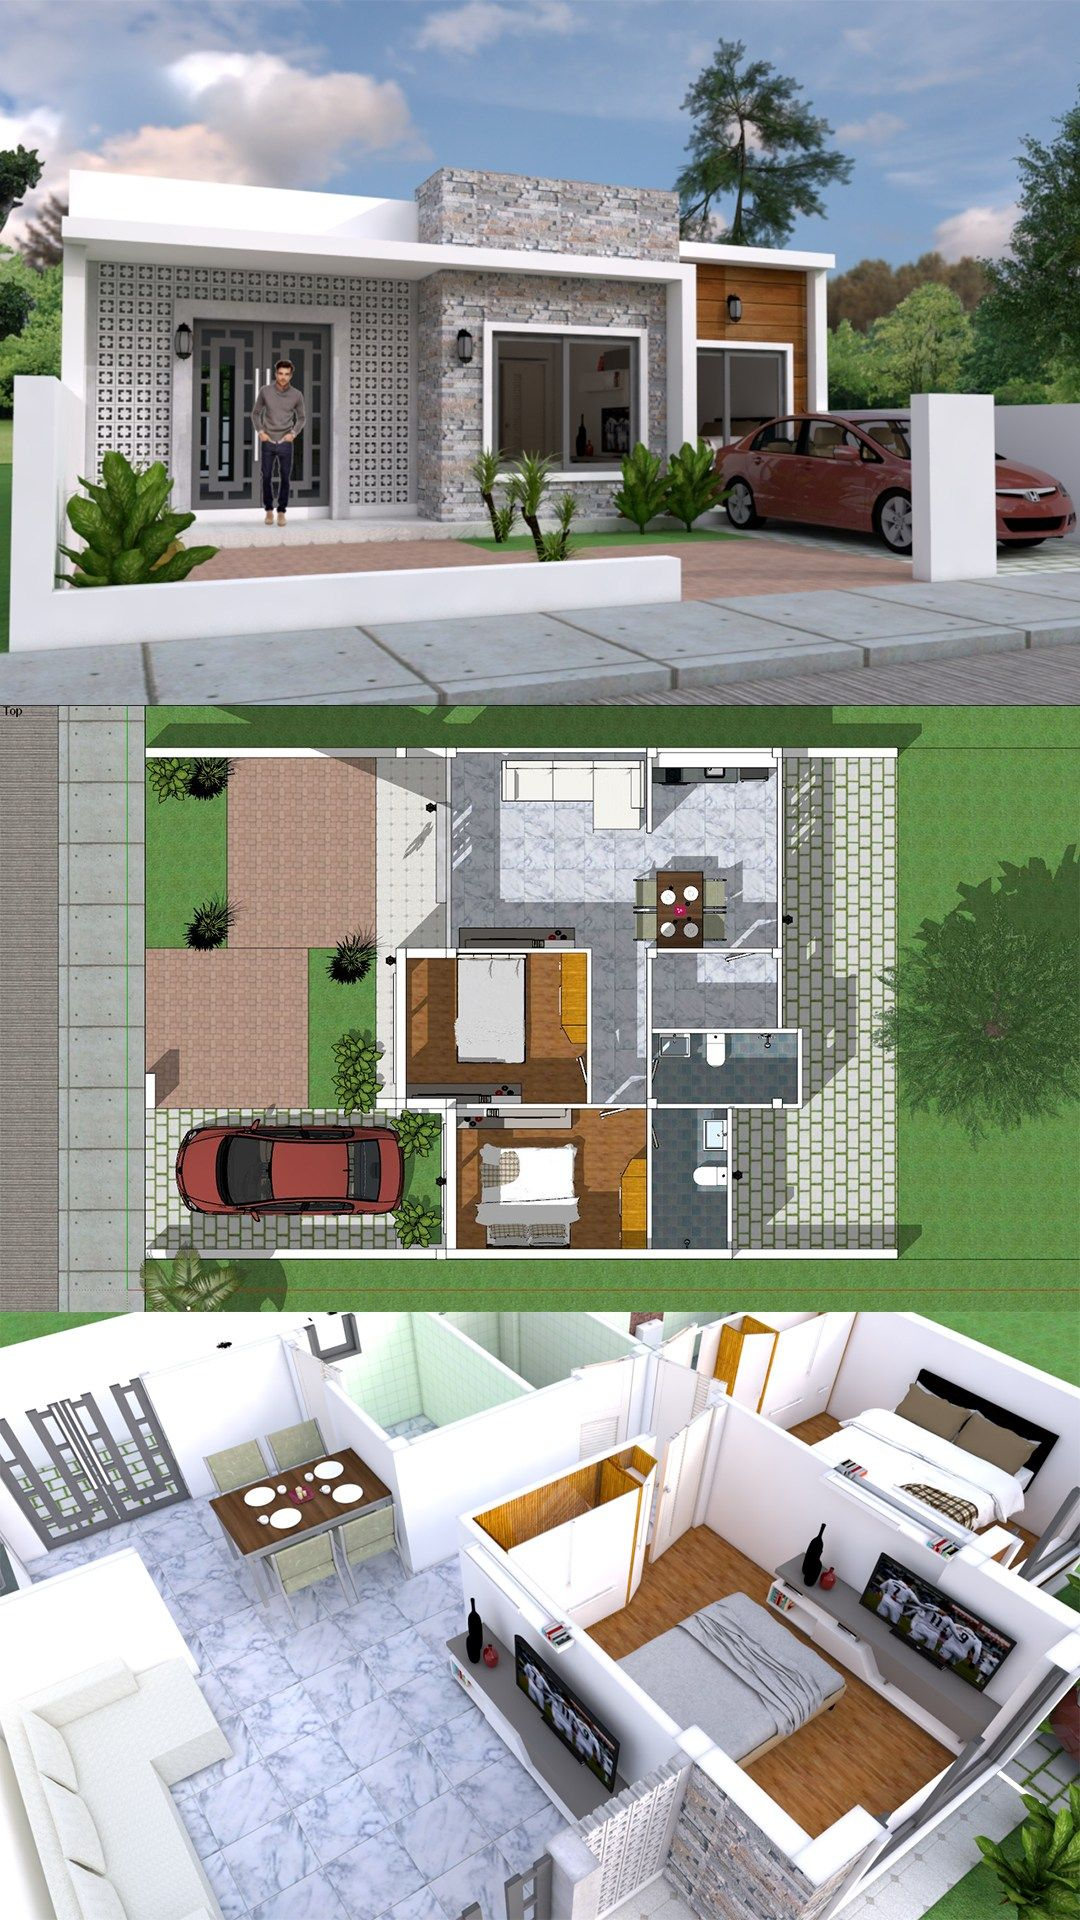 Simple Home Design Plan 10x8m With 2 Bedrooms Samphoas Plansearch Modern House Plans Simple House Simple House Design